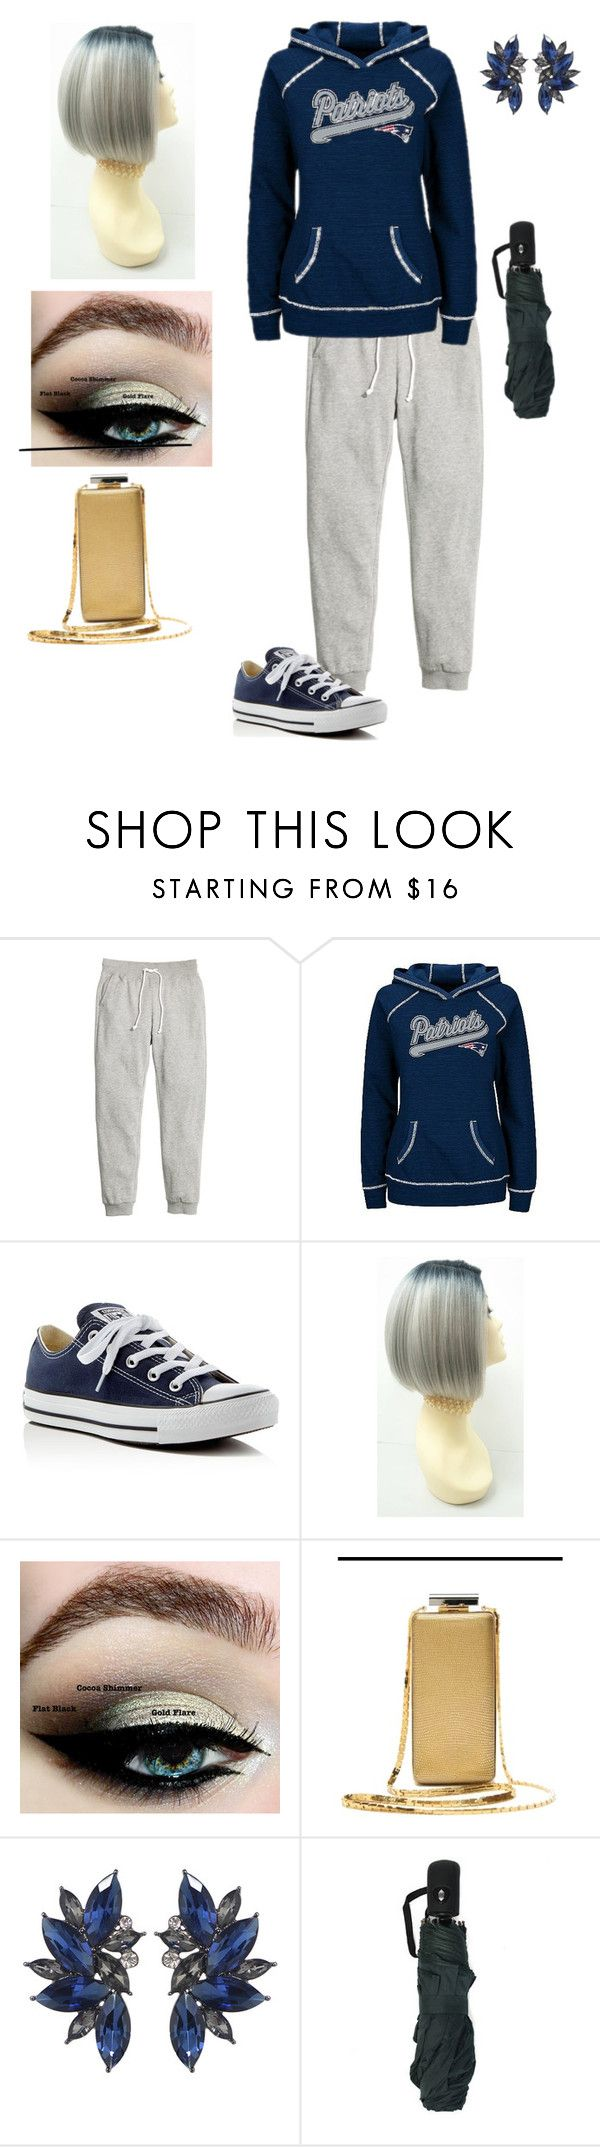 """Patriots playoffs"" by lovableangeldoll ❤ liked on Polyvore featuring H&M, Converse and Lanvin"